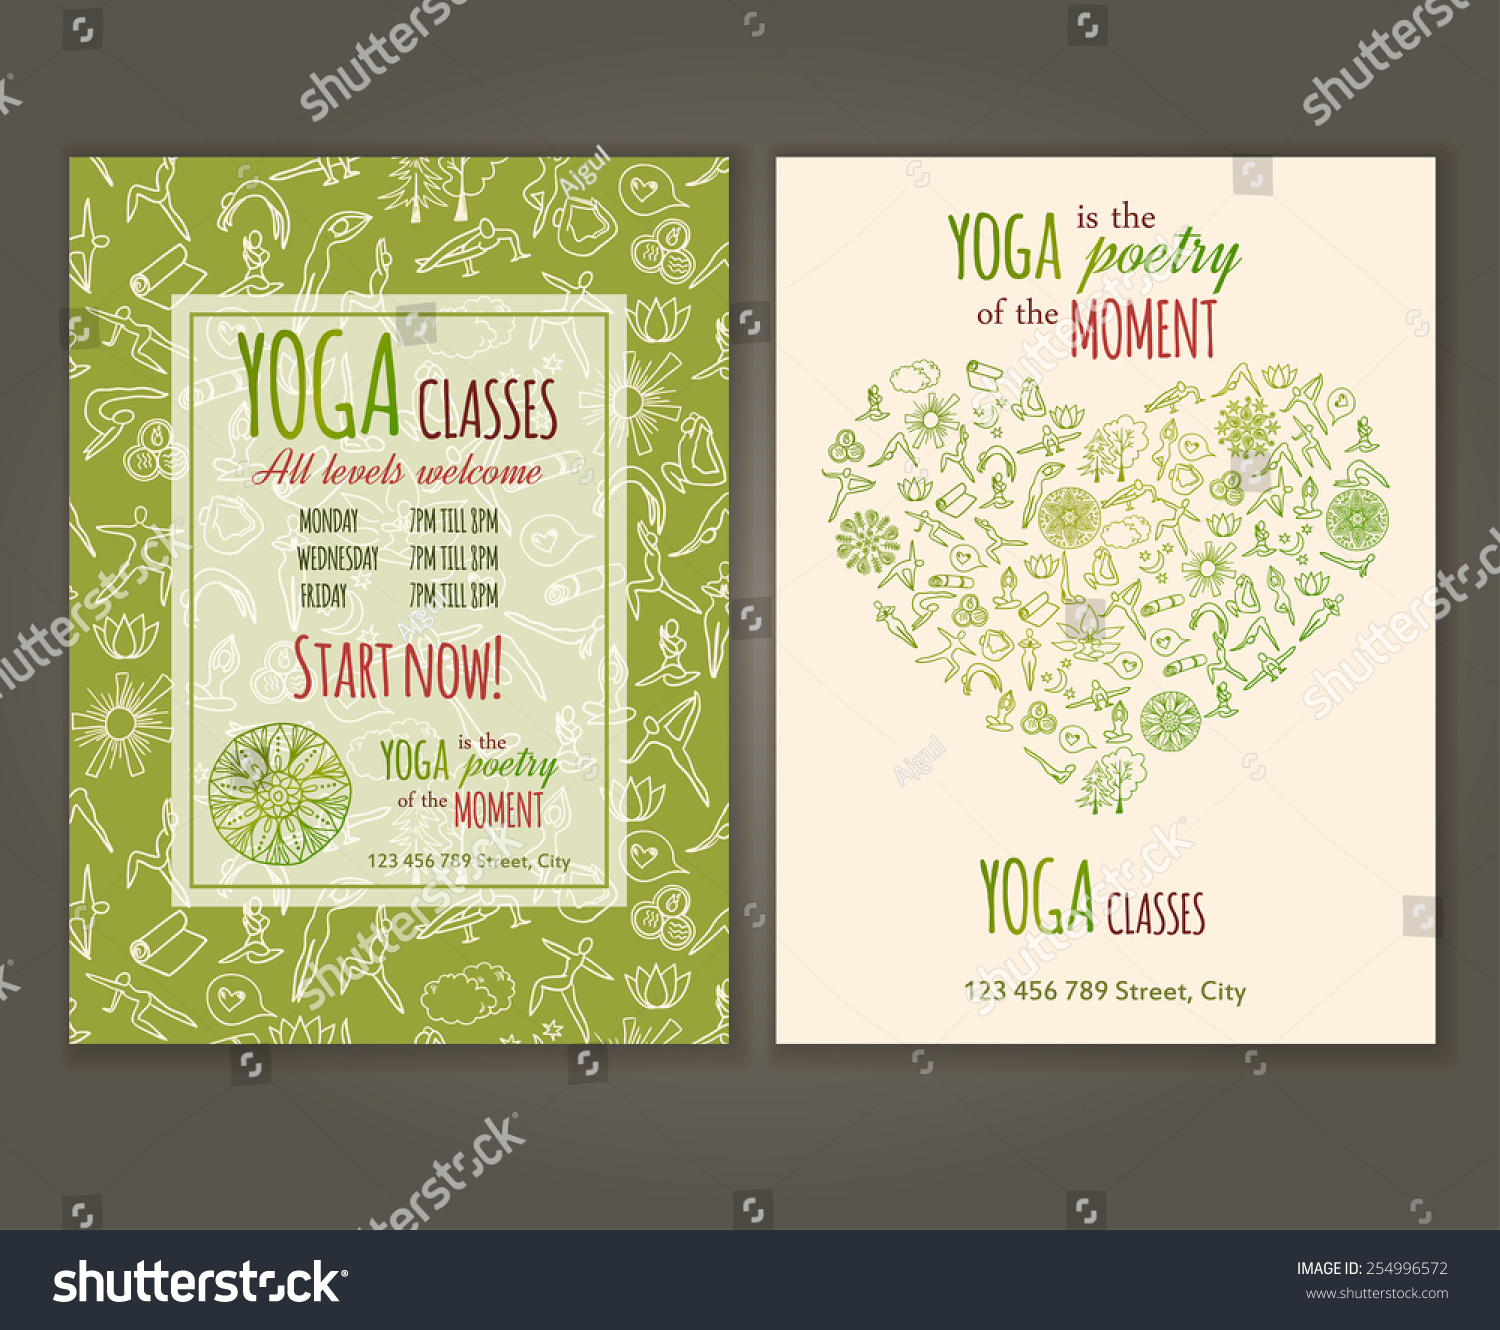 flyers template yoga class yoga quote stock vector 254996572 flyers template for yoga class yoga quote yoga vector seamless pattern is under clipping